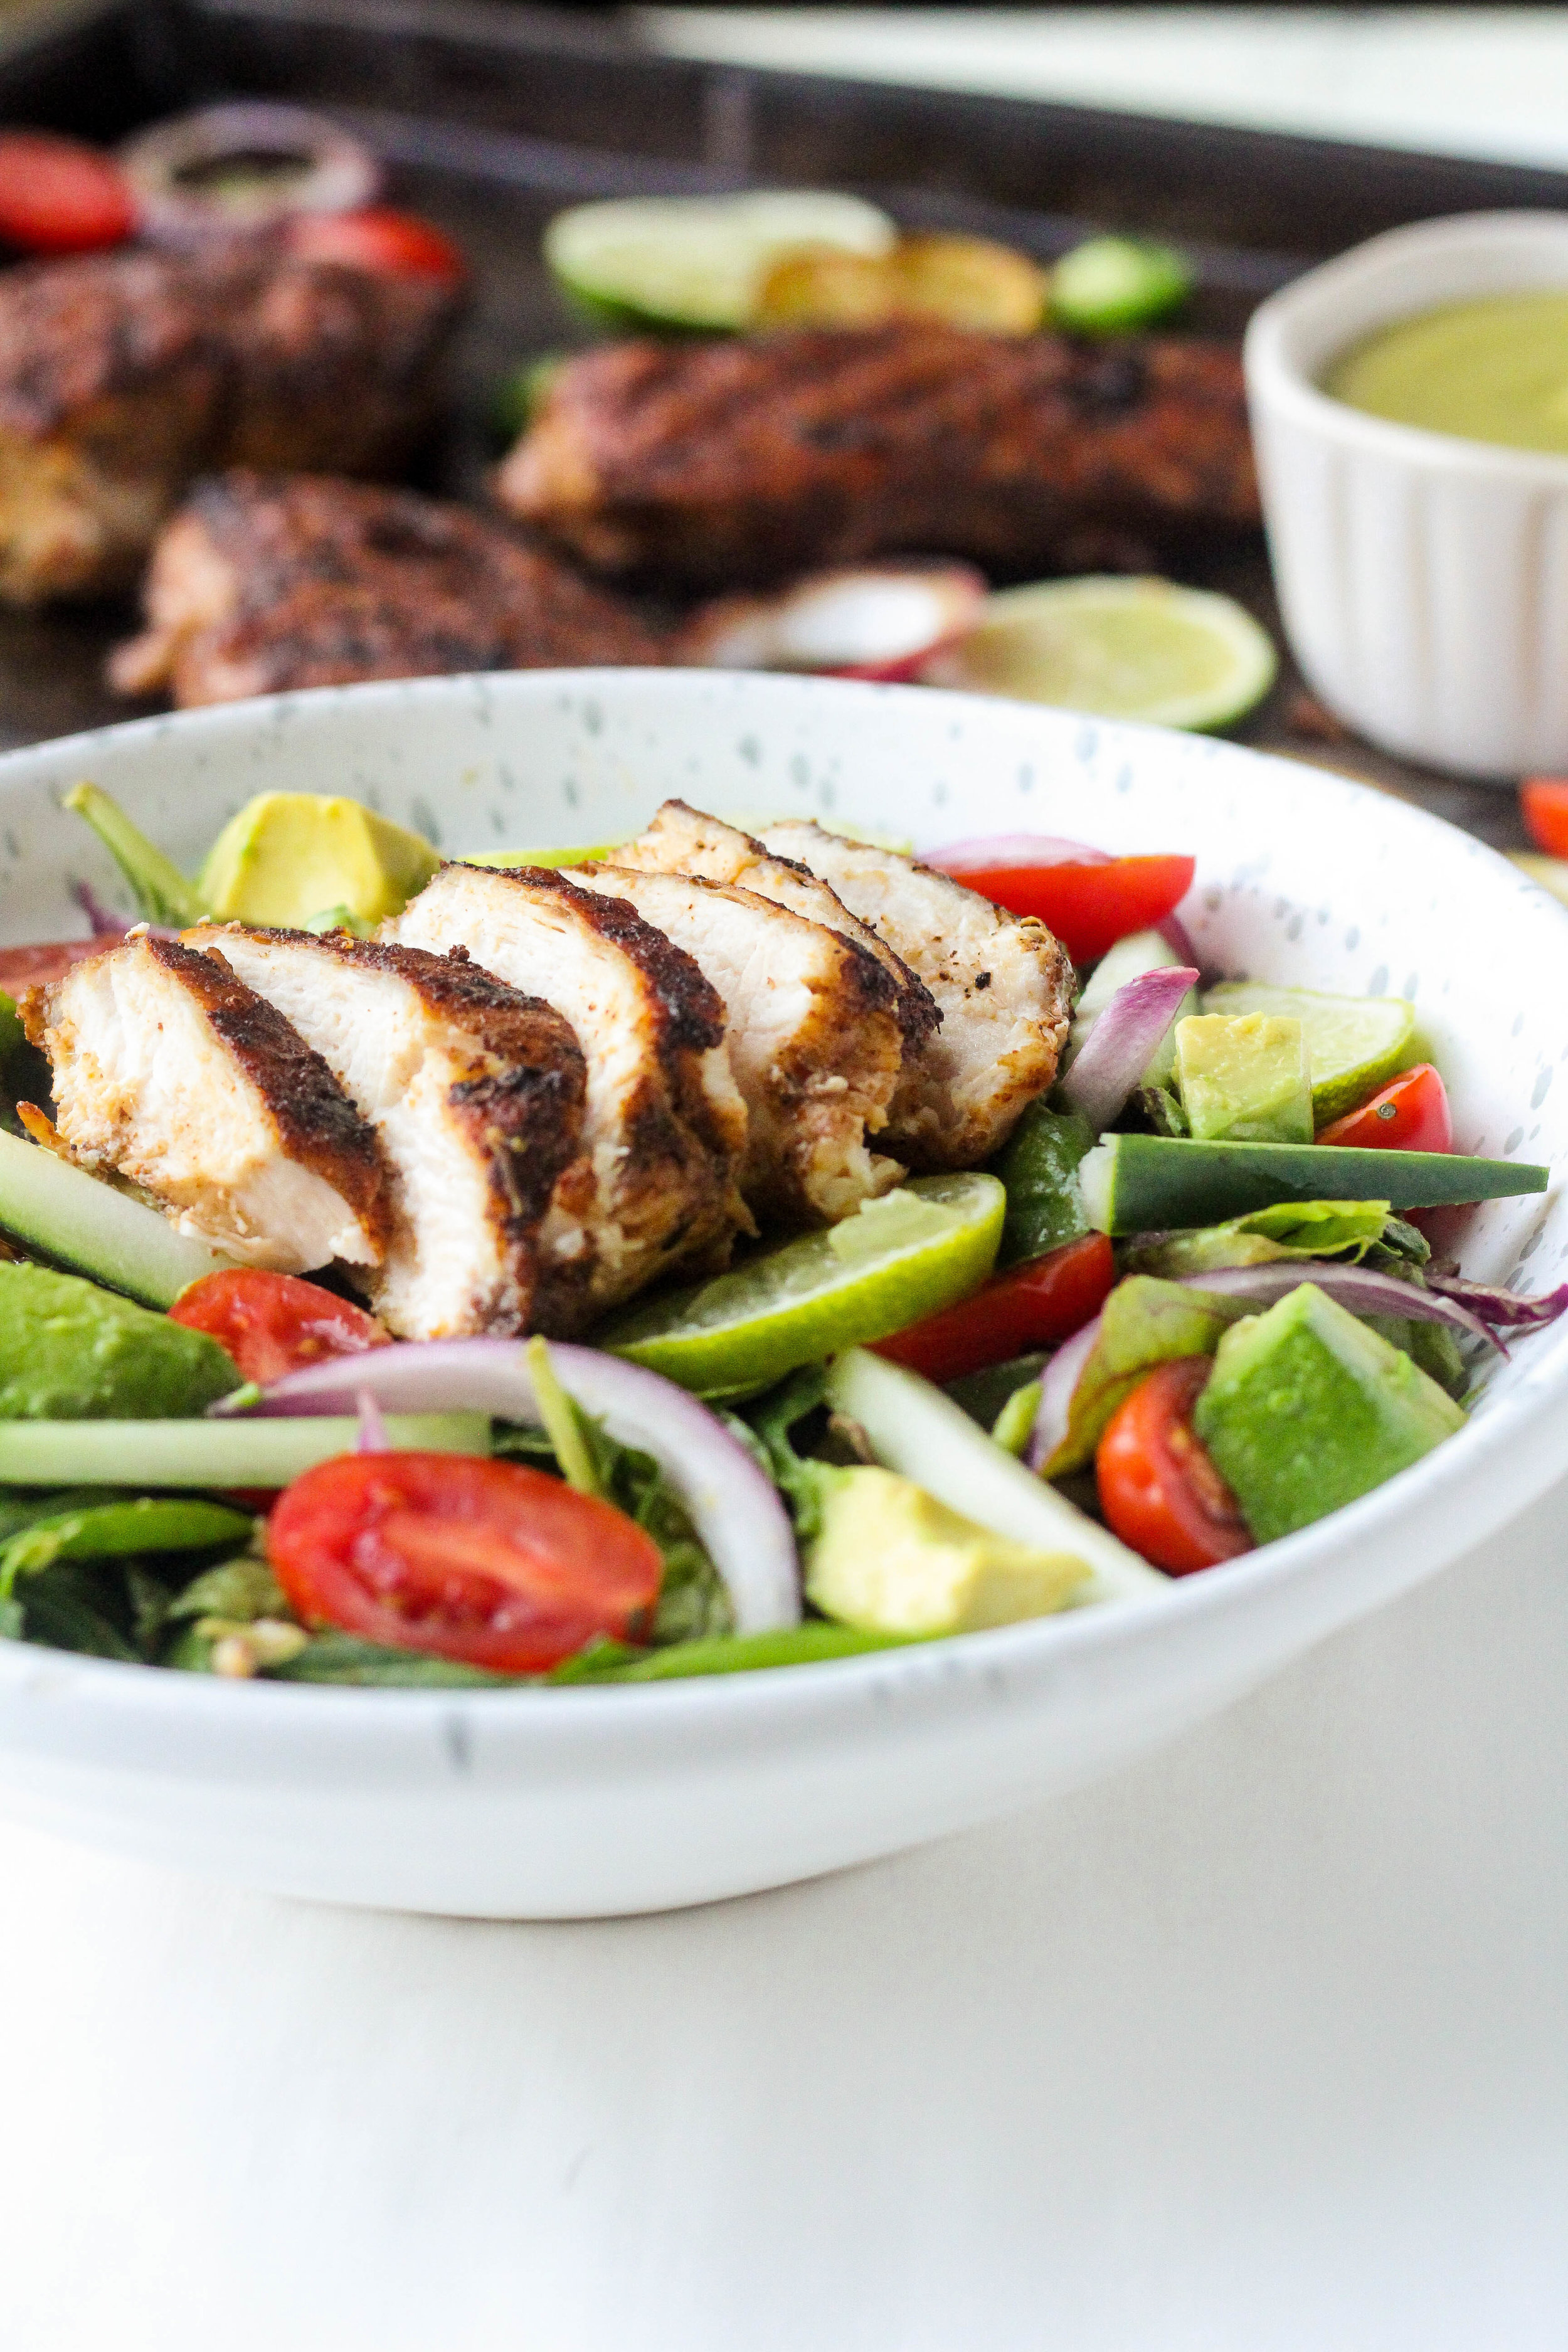 Chipotle Chicken Salad with Avocado Lime Dressing